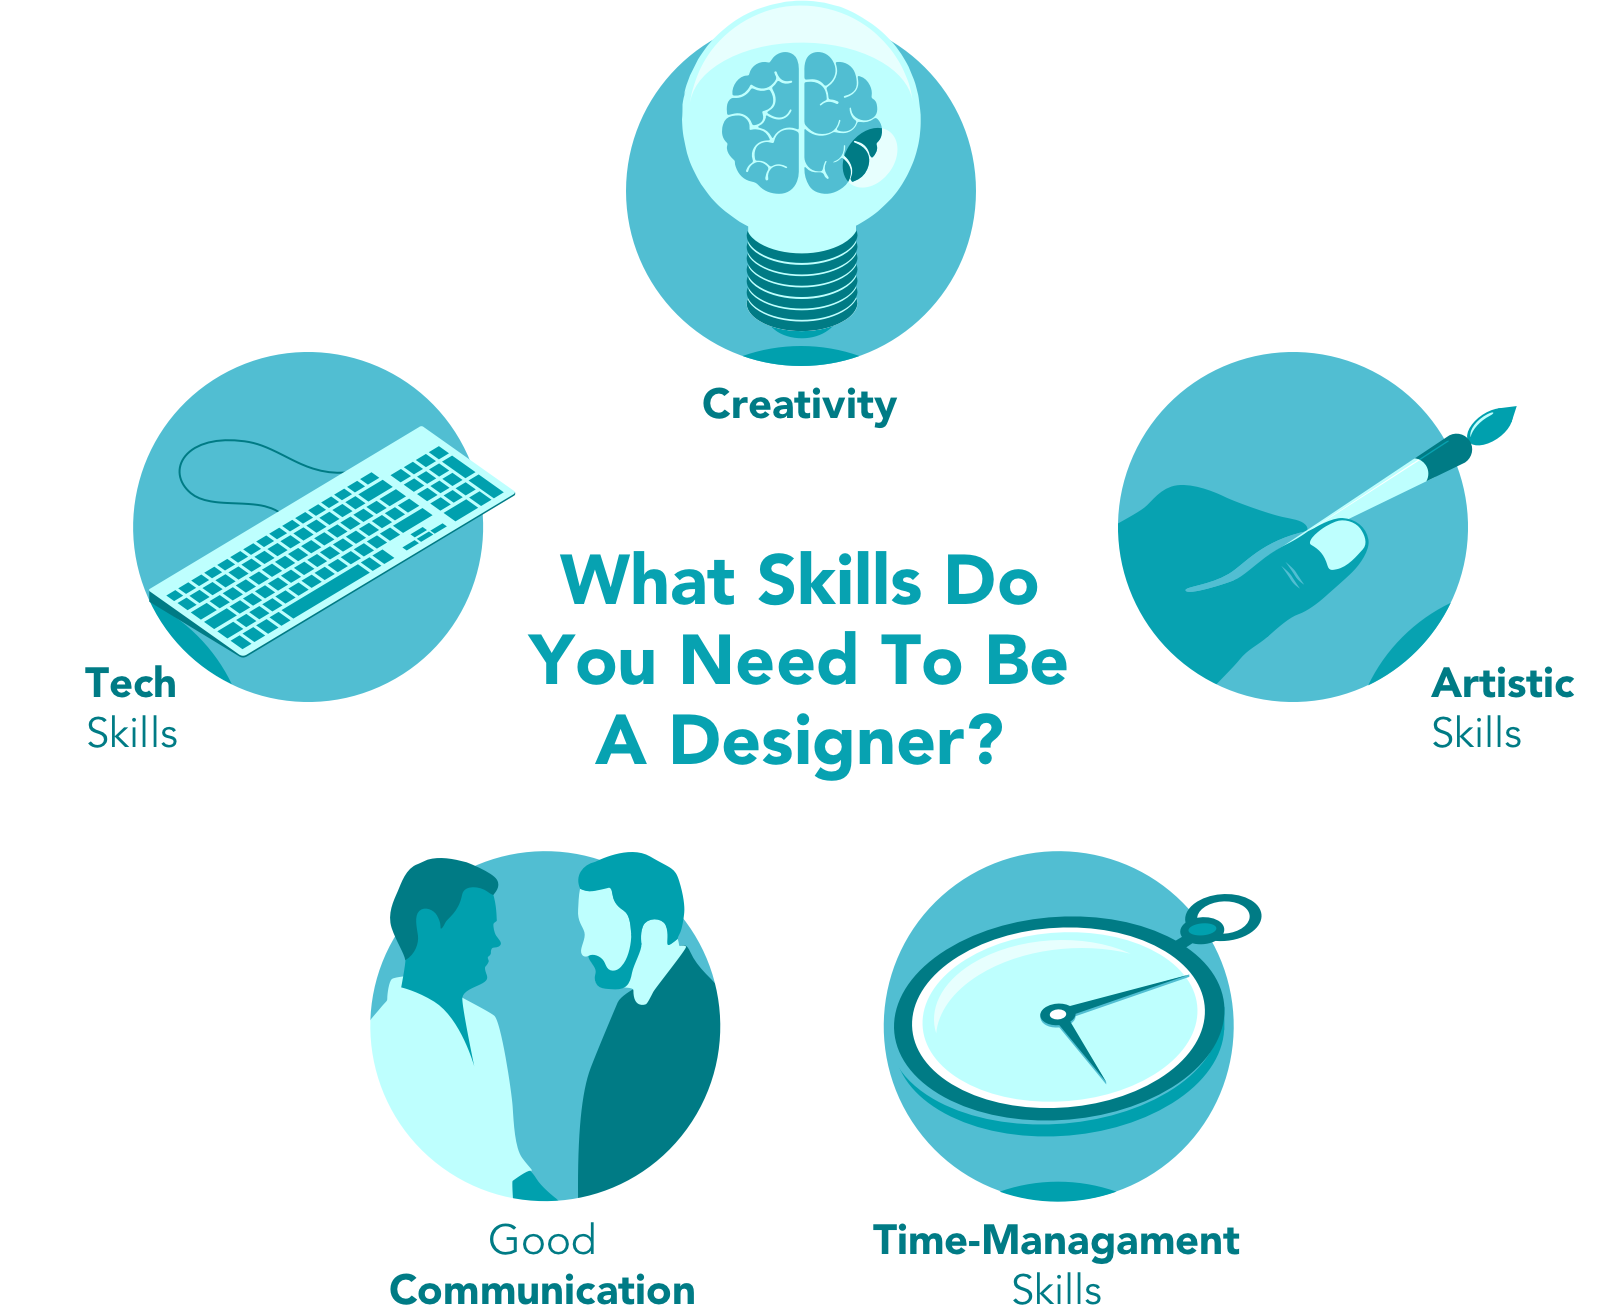 What skills do you need to be a designer?